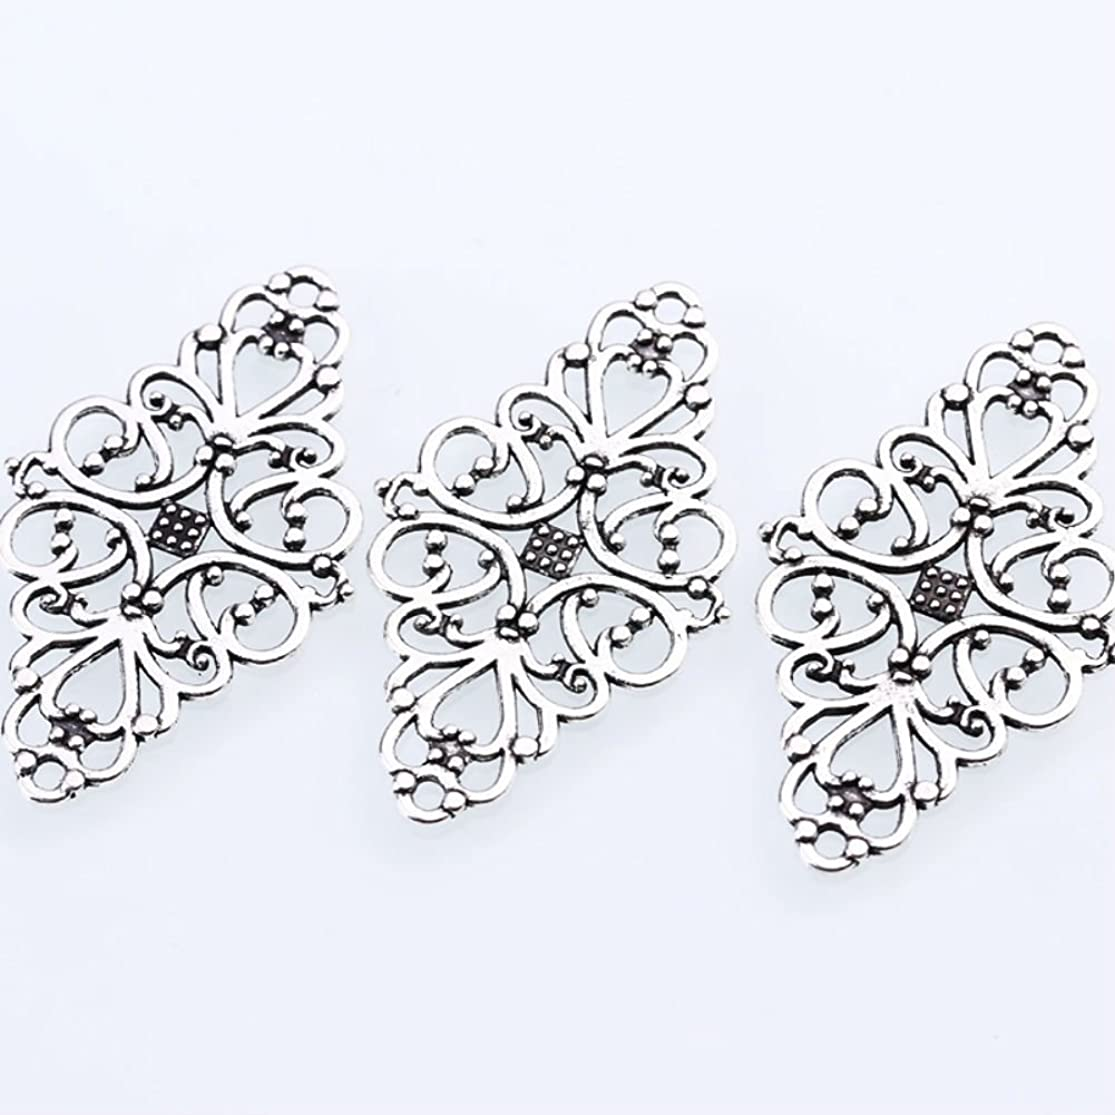 AKOAK 40 Pcs/Pack Antique Silver Hollow Filigree Flower Charms Jewelry Connectors Vintage Metal Zinc Alloy Trendy Filigree Charms for DIY Jewelry Making rinapcxf0